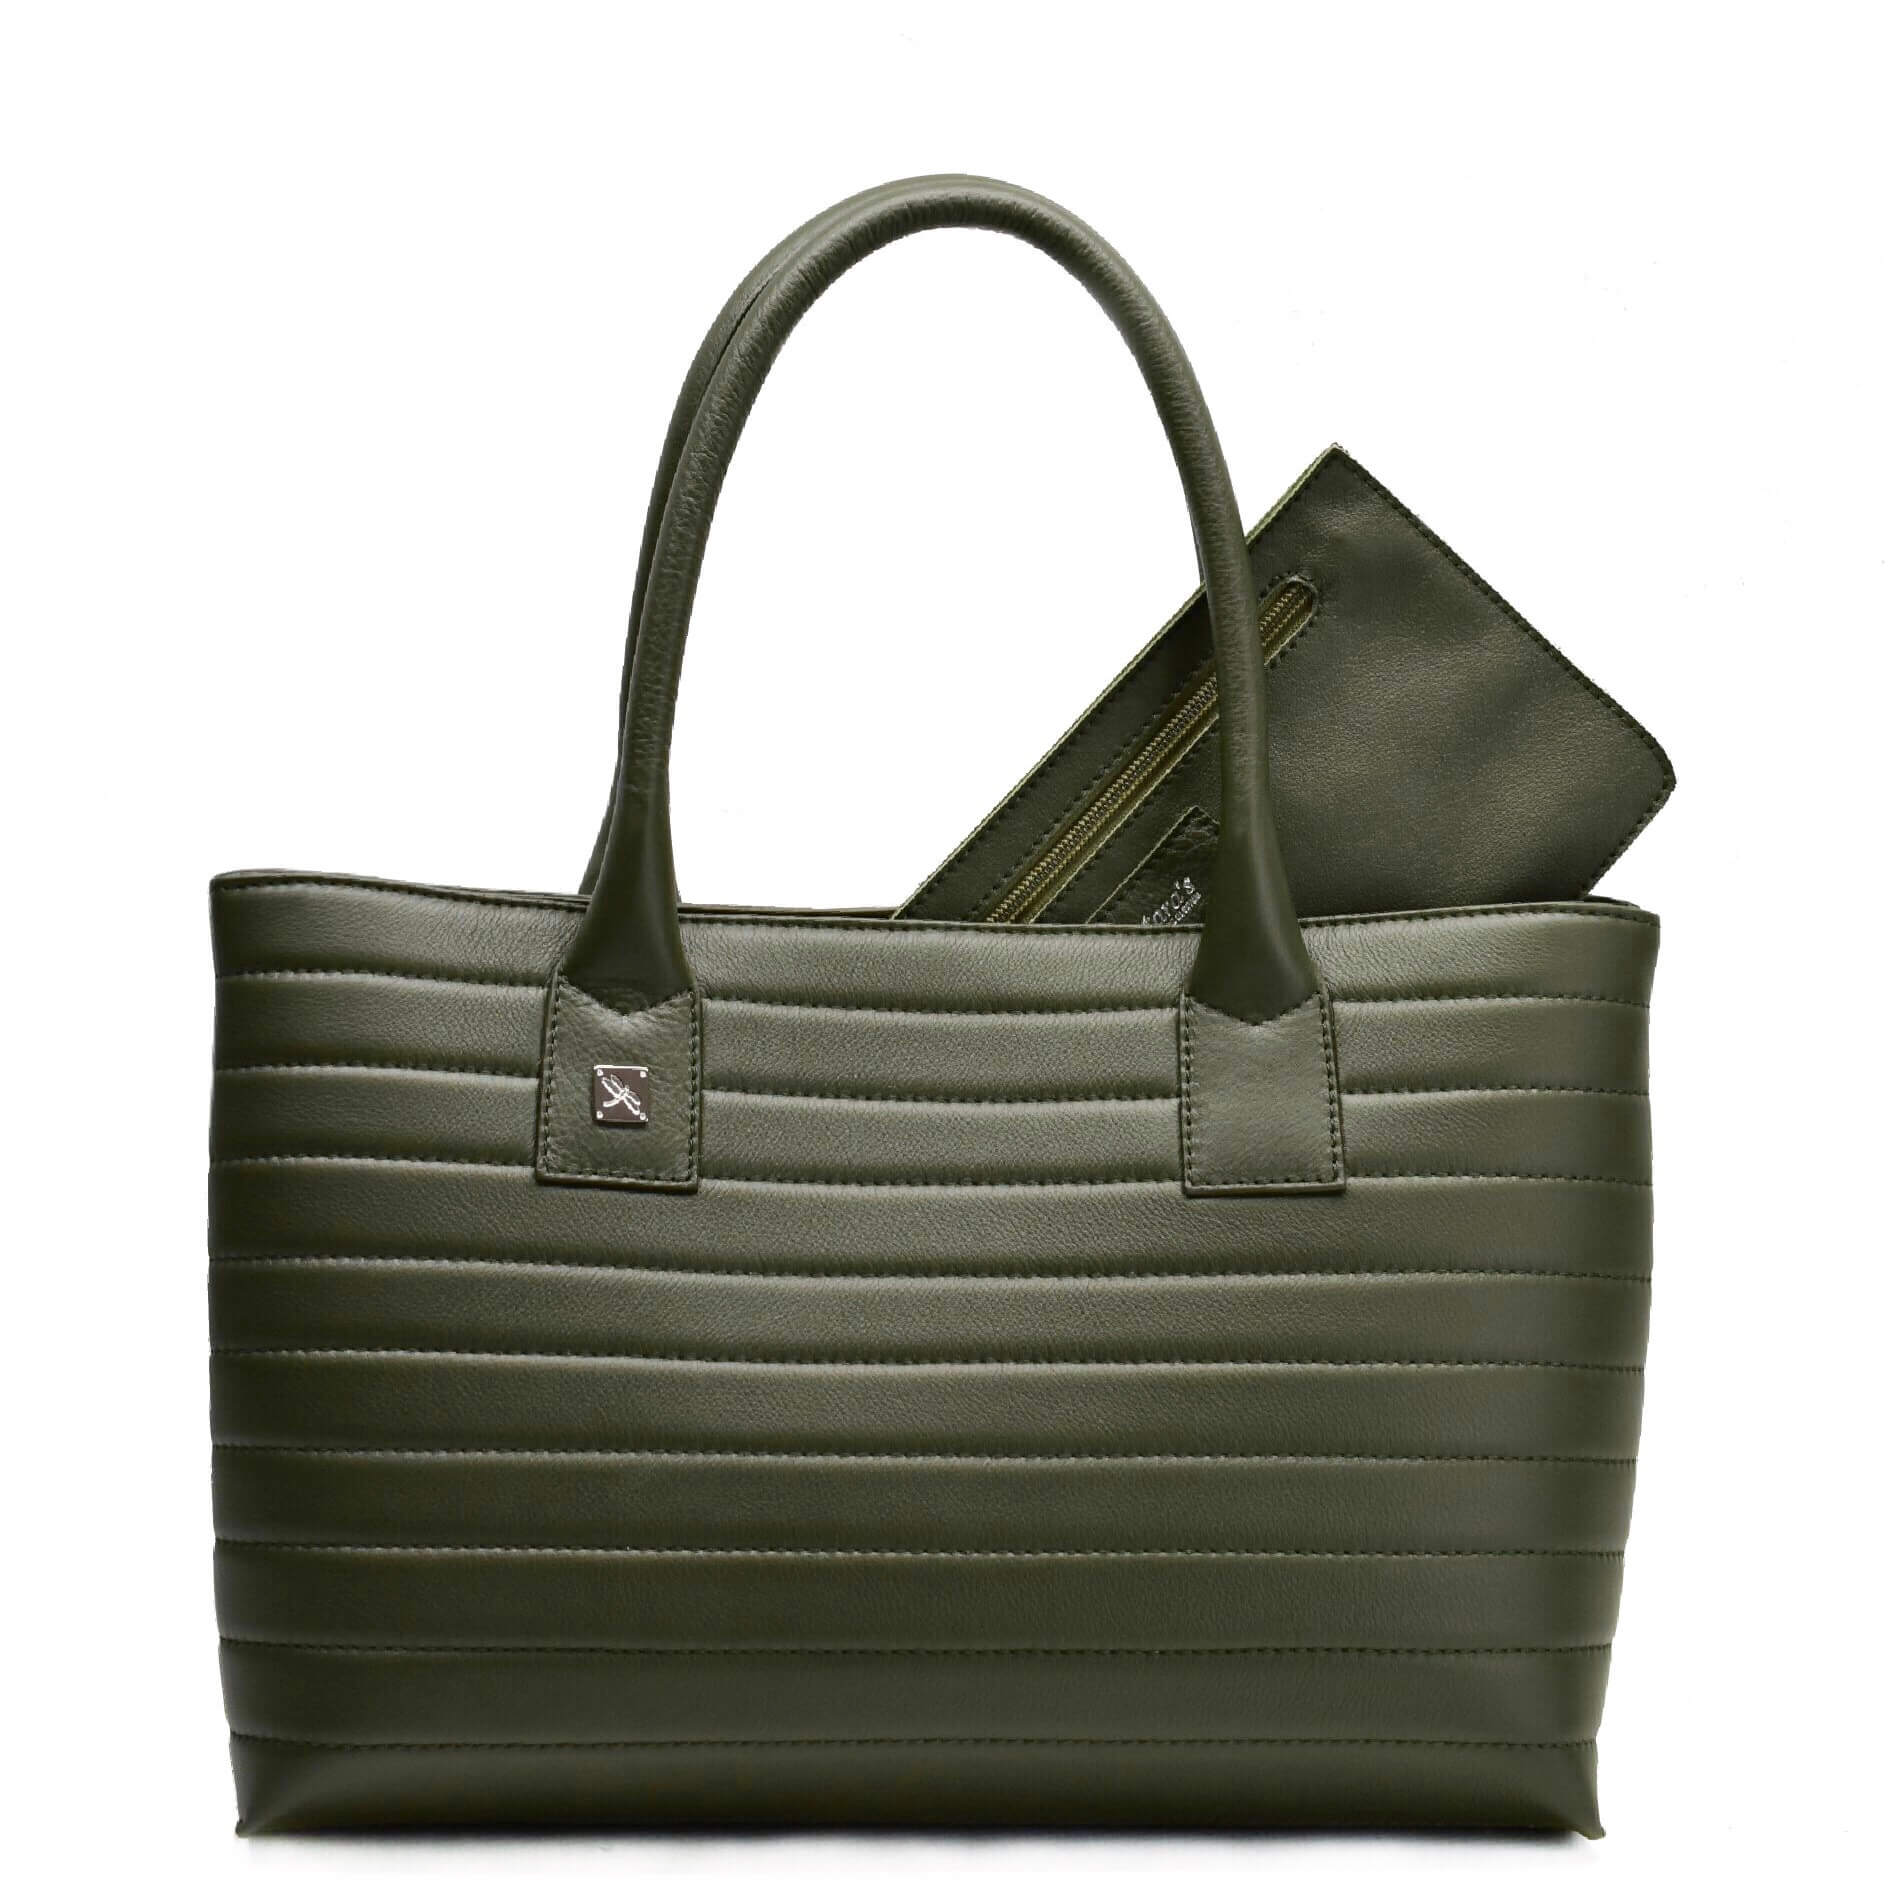 Green Tote Leather Handbag. Natalia S